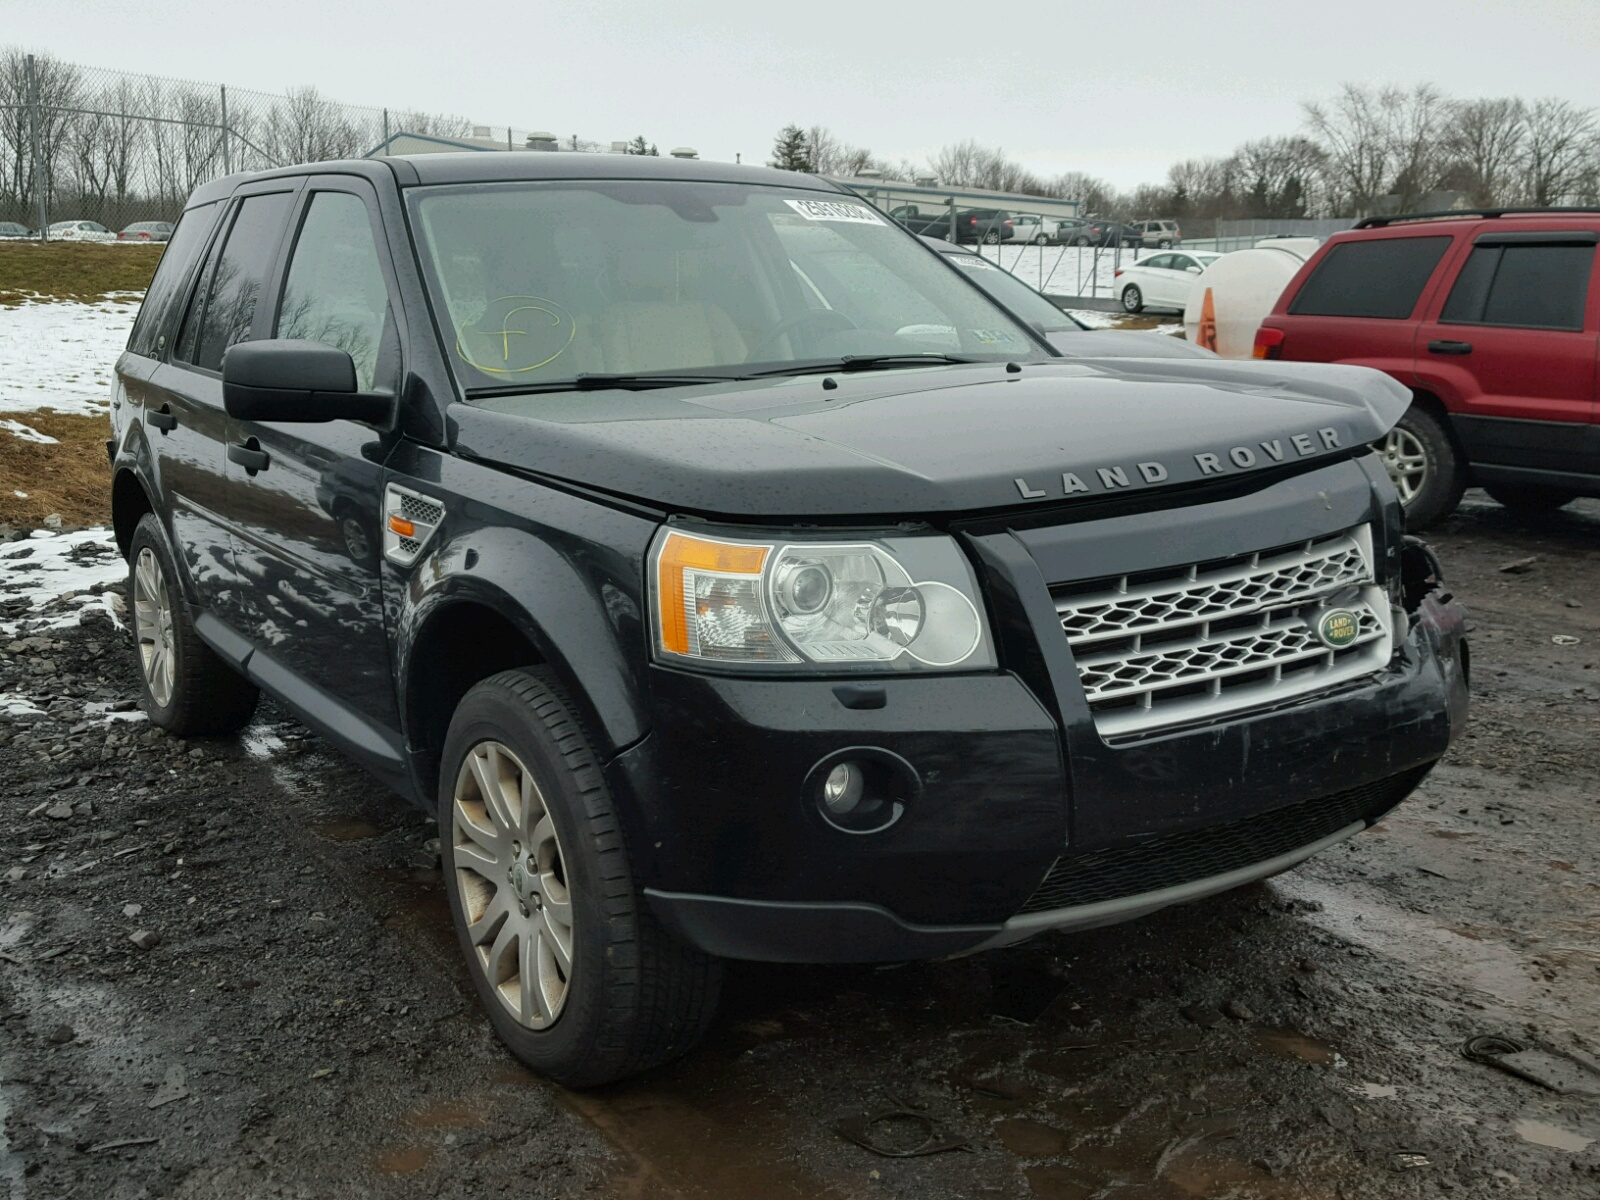 of lincoln carfinder auto copart on se en online landrover cert rover sale view gray lot in land ne for salvage title auctions right